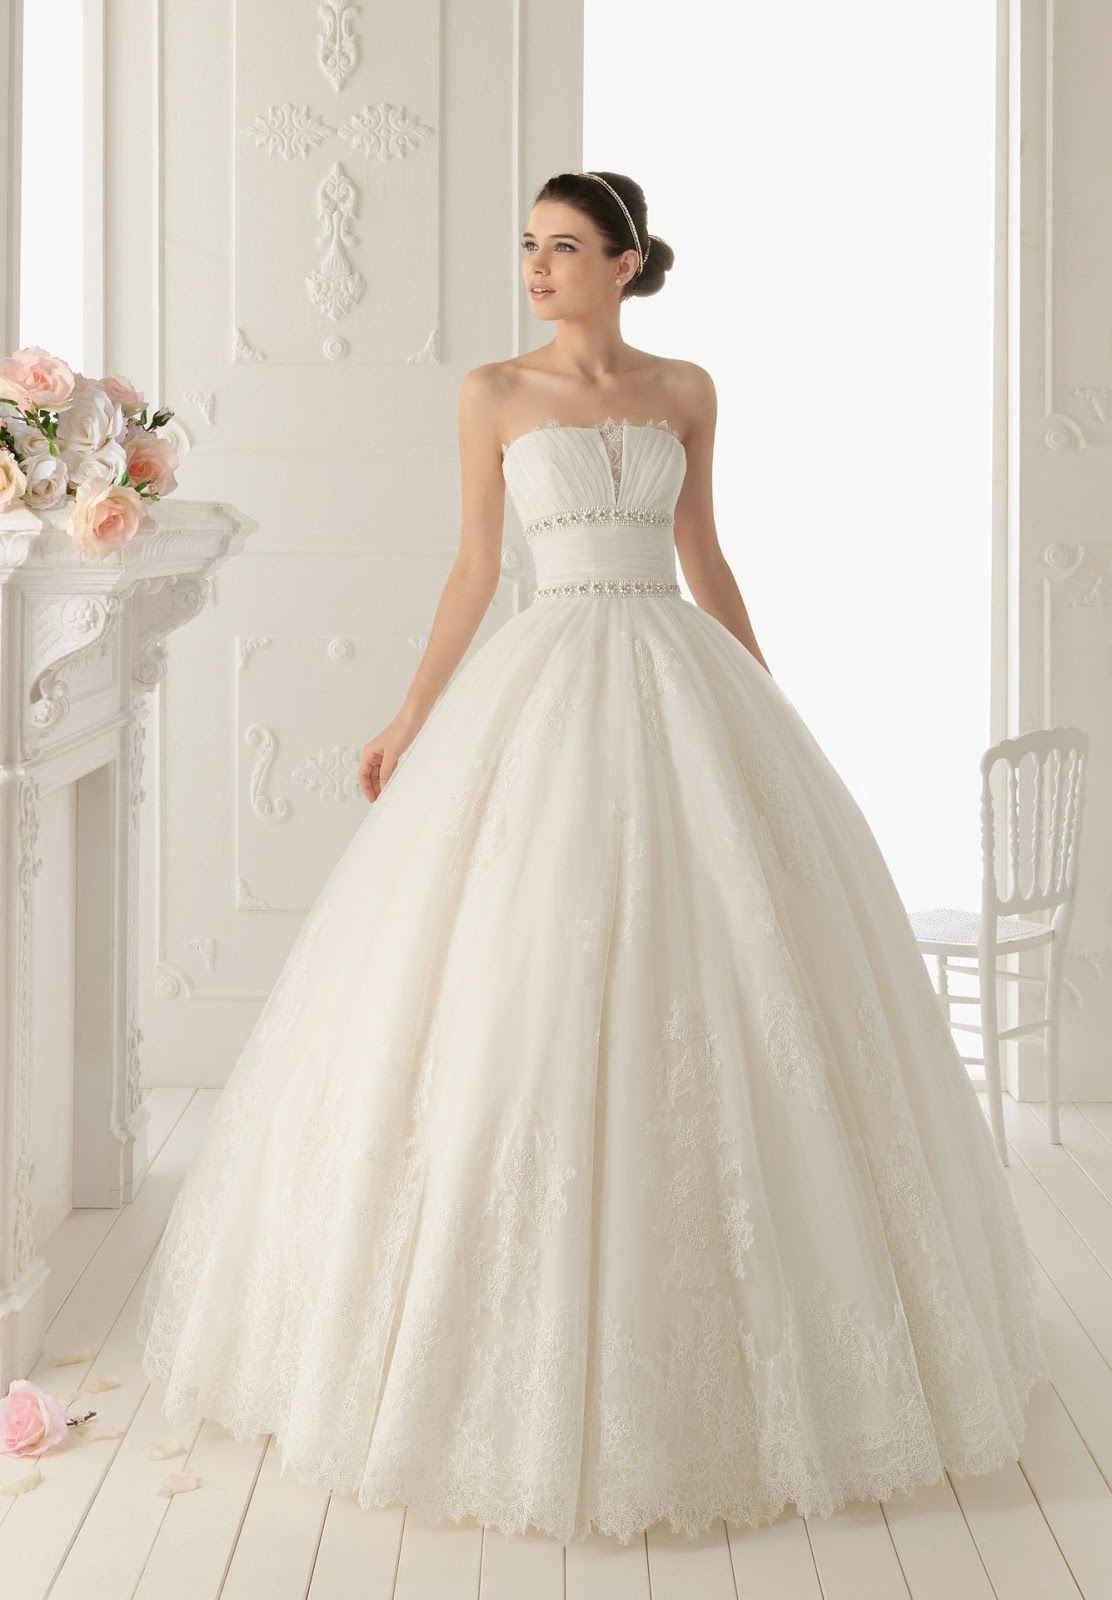 Whiteazalea ball gowns lace ball gown wedding dress for Elegant ball gown wedding dresses